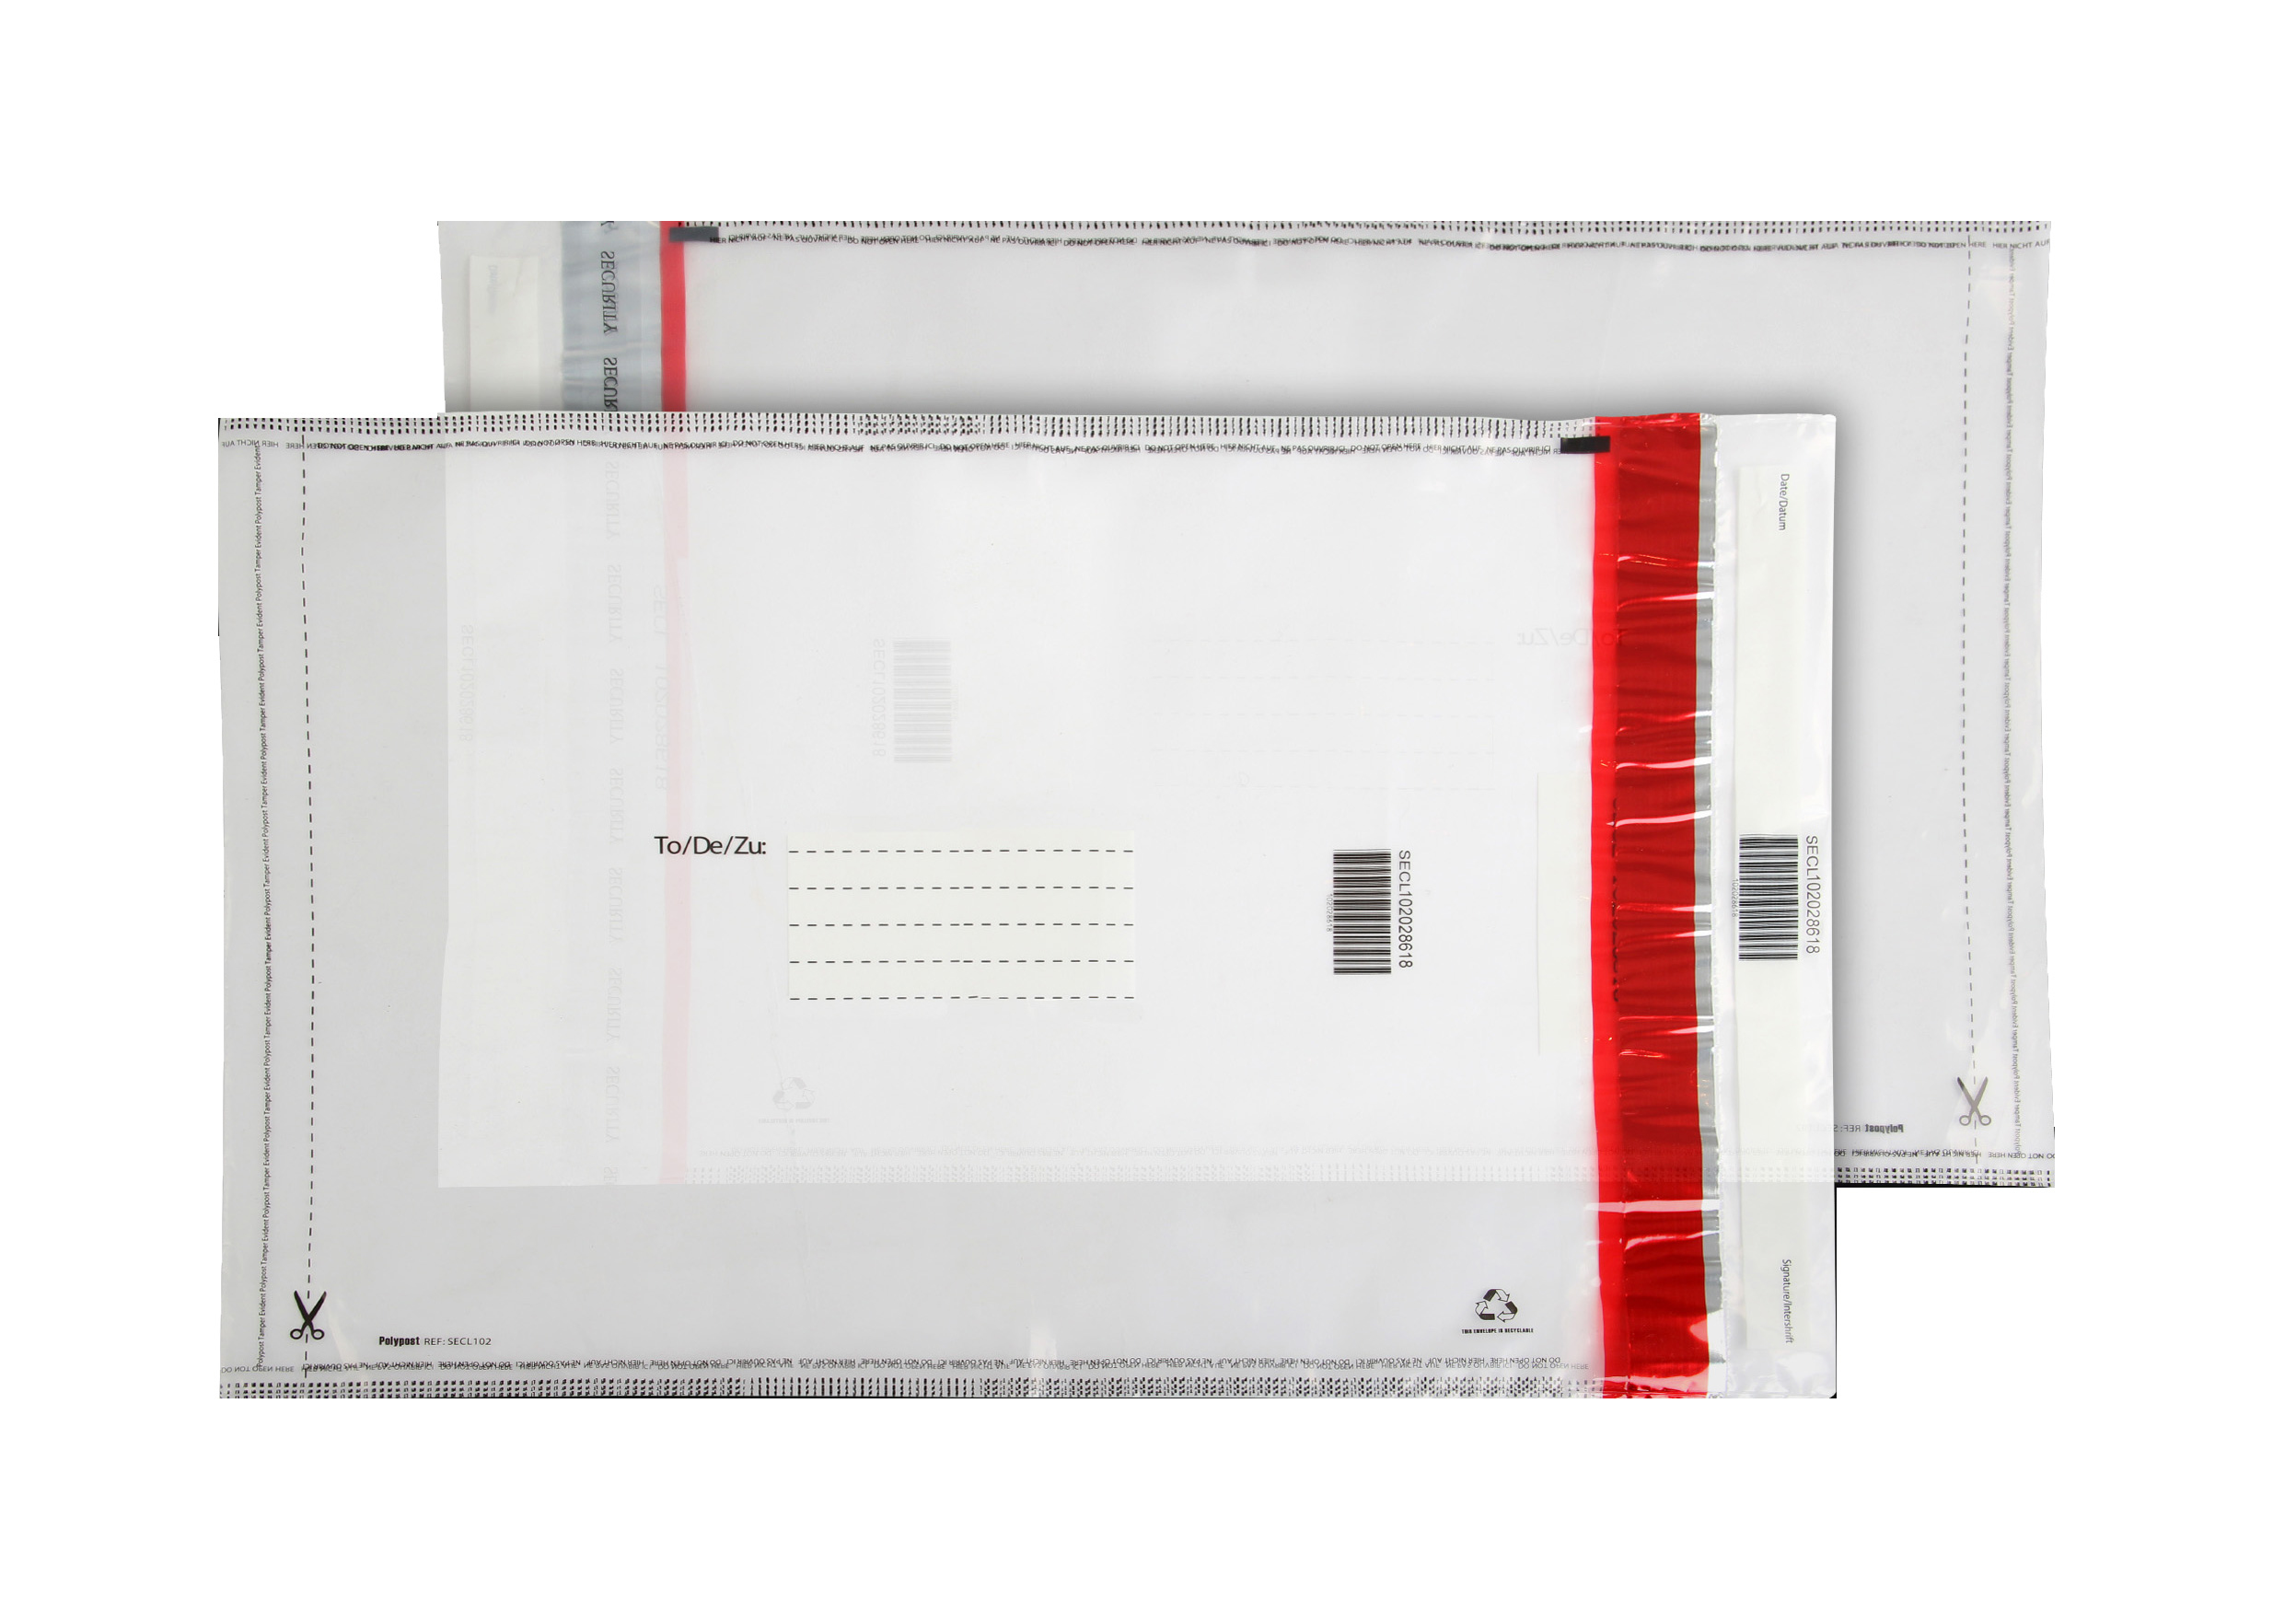 SECL102 Blake Purely Packaging Clear Peel & Seal Polythene Pocket 430X330mm 70Mu Pack 500 Code Secl102 3P- SECL102